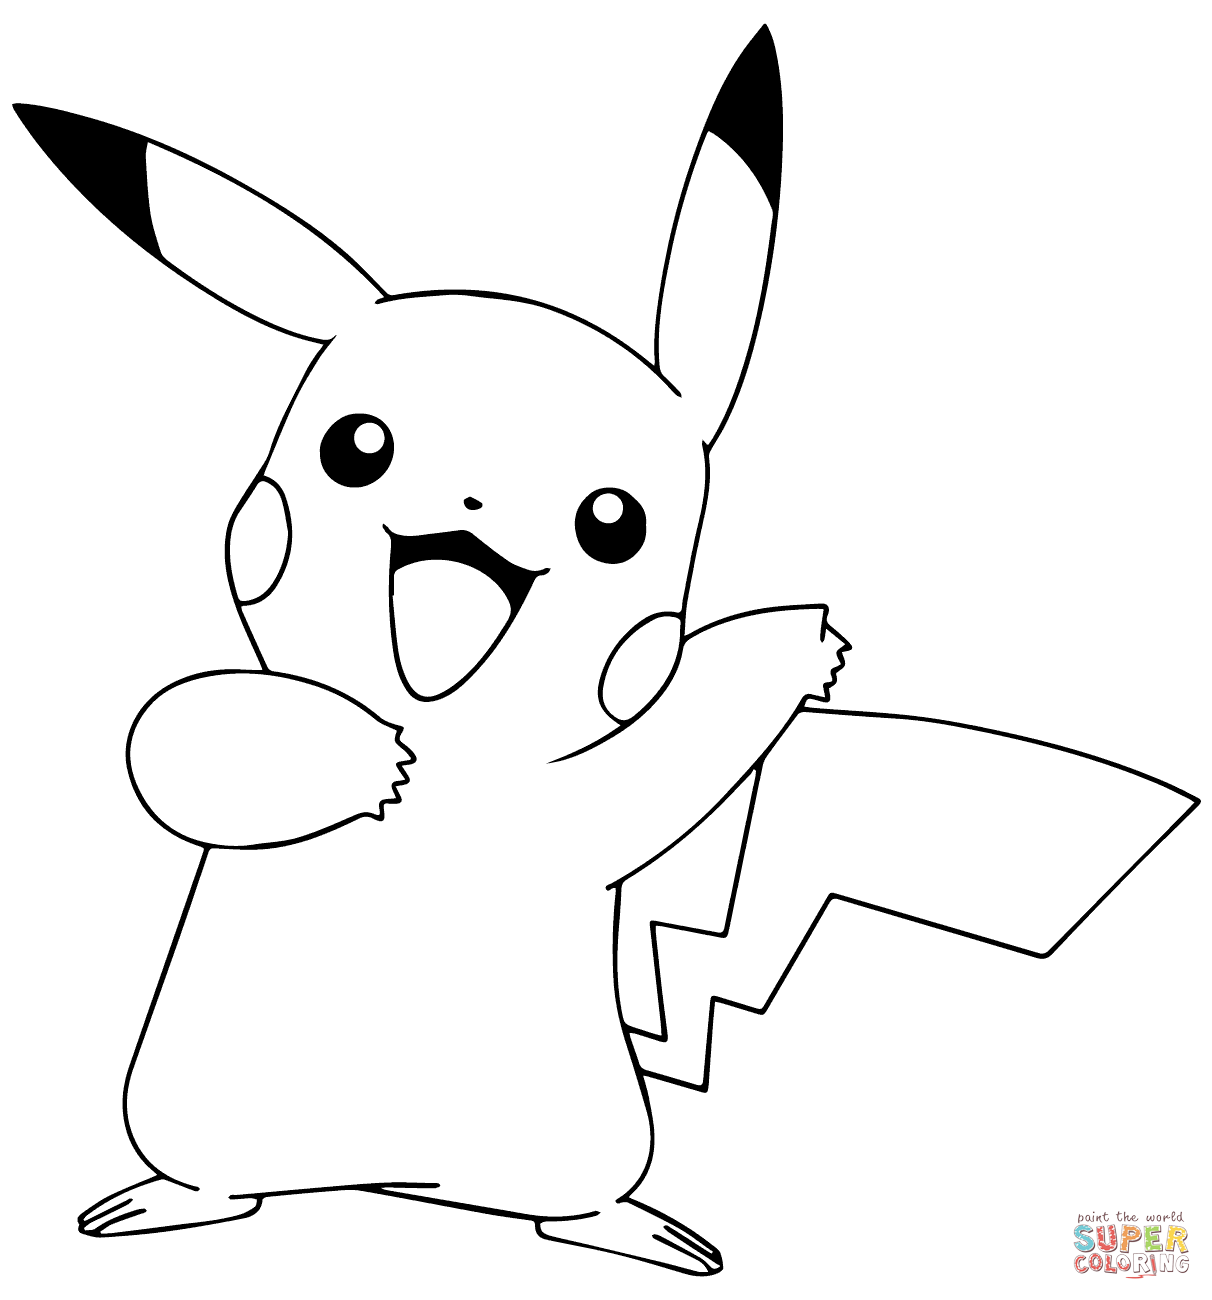 pikachu cute pokemon coloring pages pikachu coloring pages to download and print for free pikachu pages pokemon cute coloring